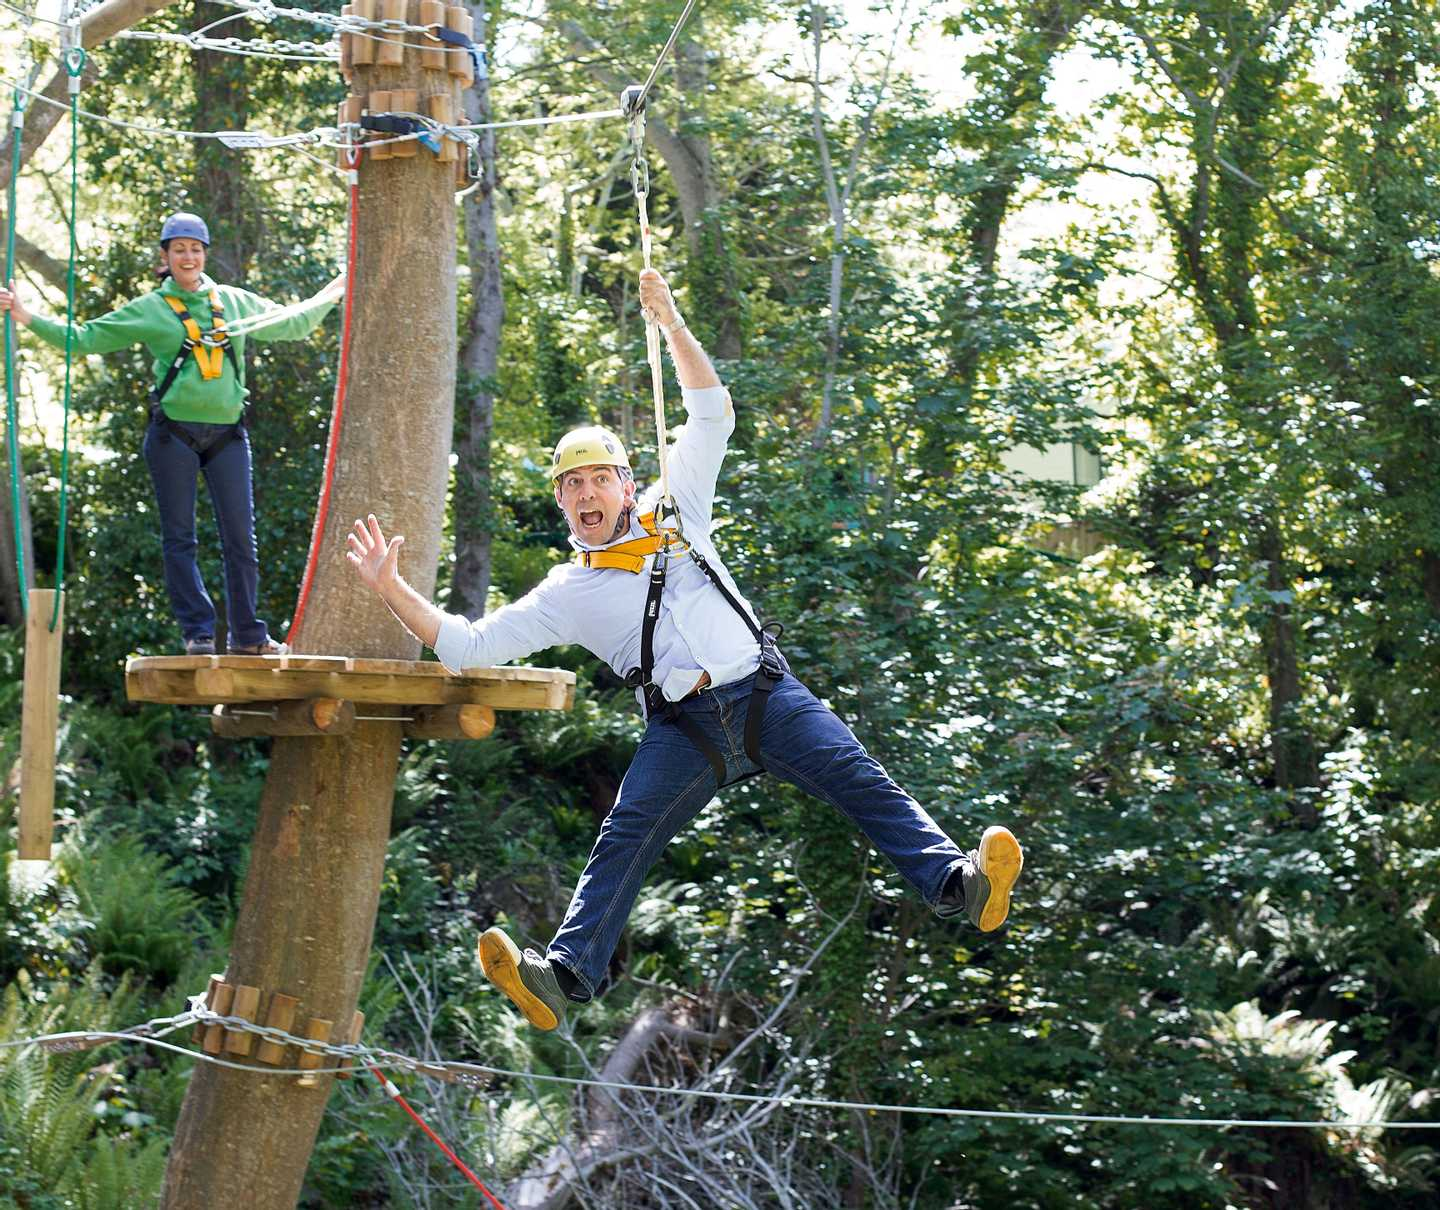 A guest on the ropes course at Quay West